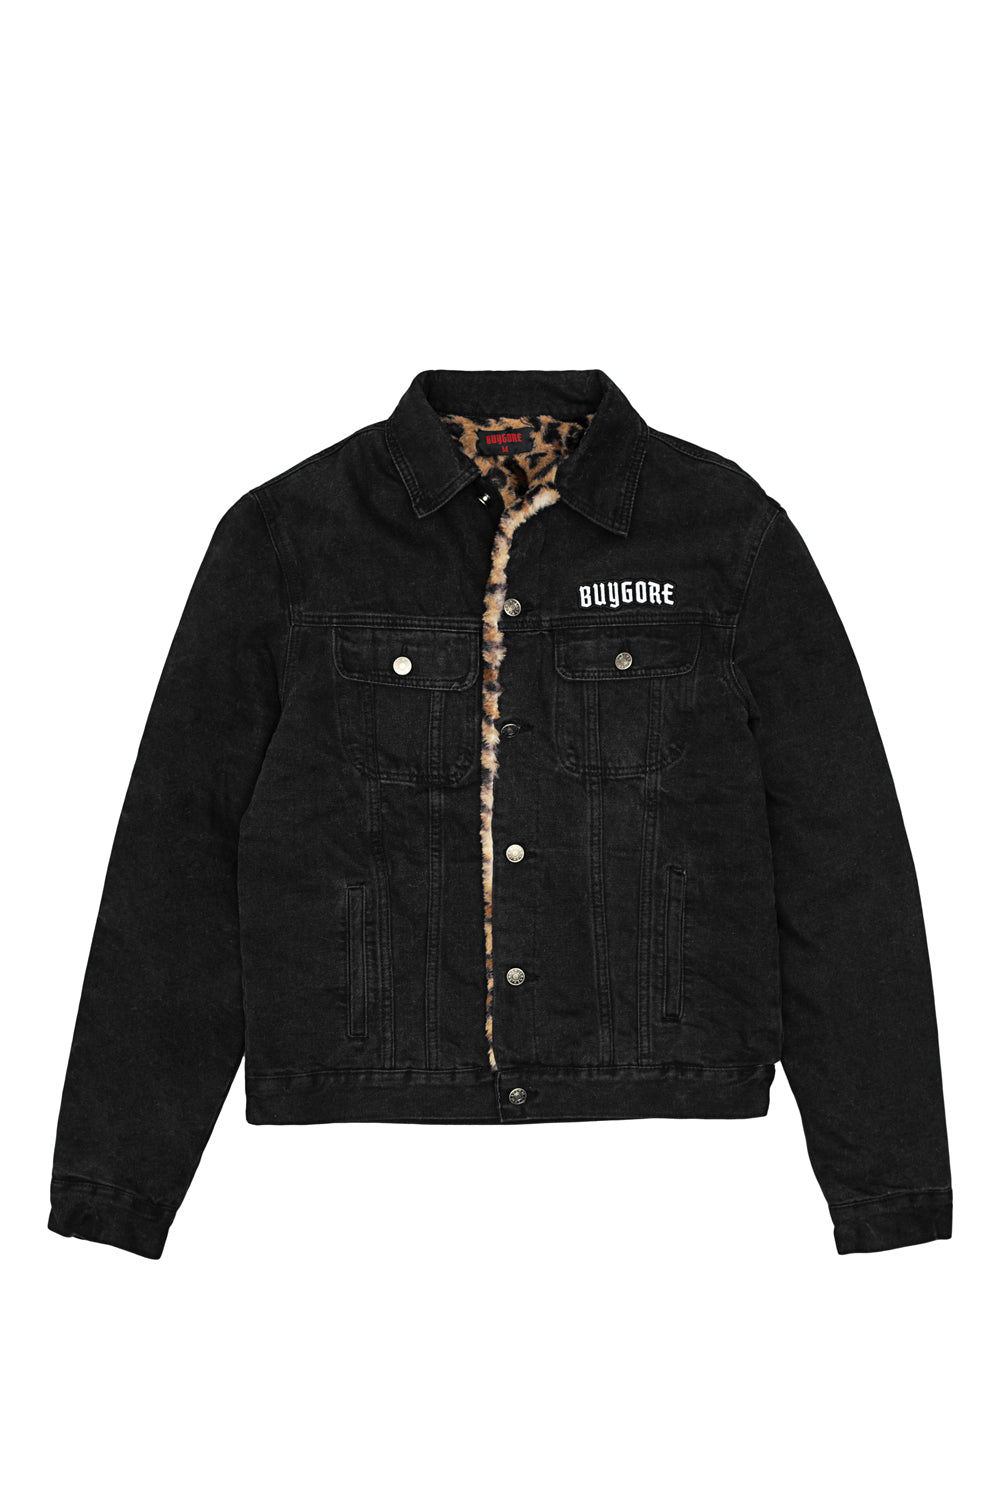 Buygore Denim Jacket